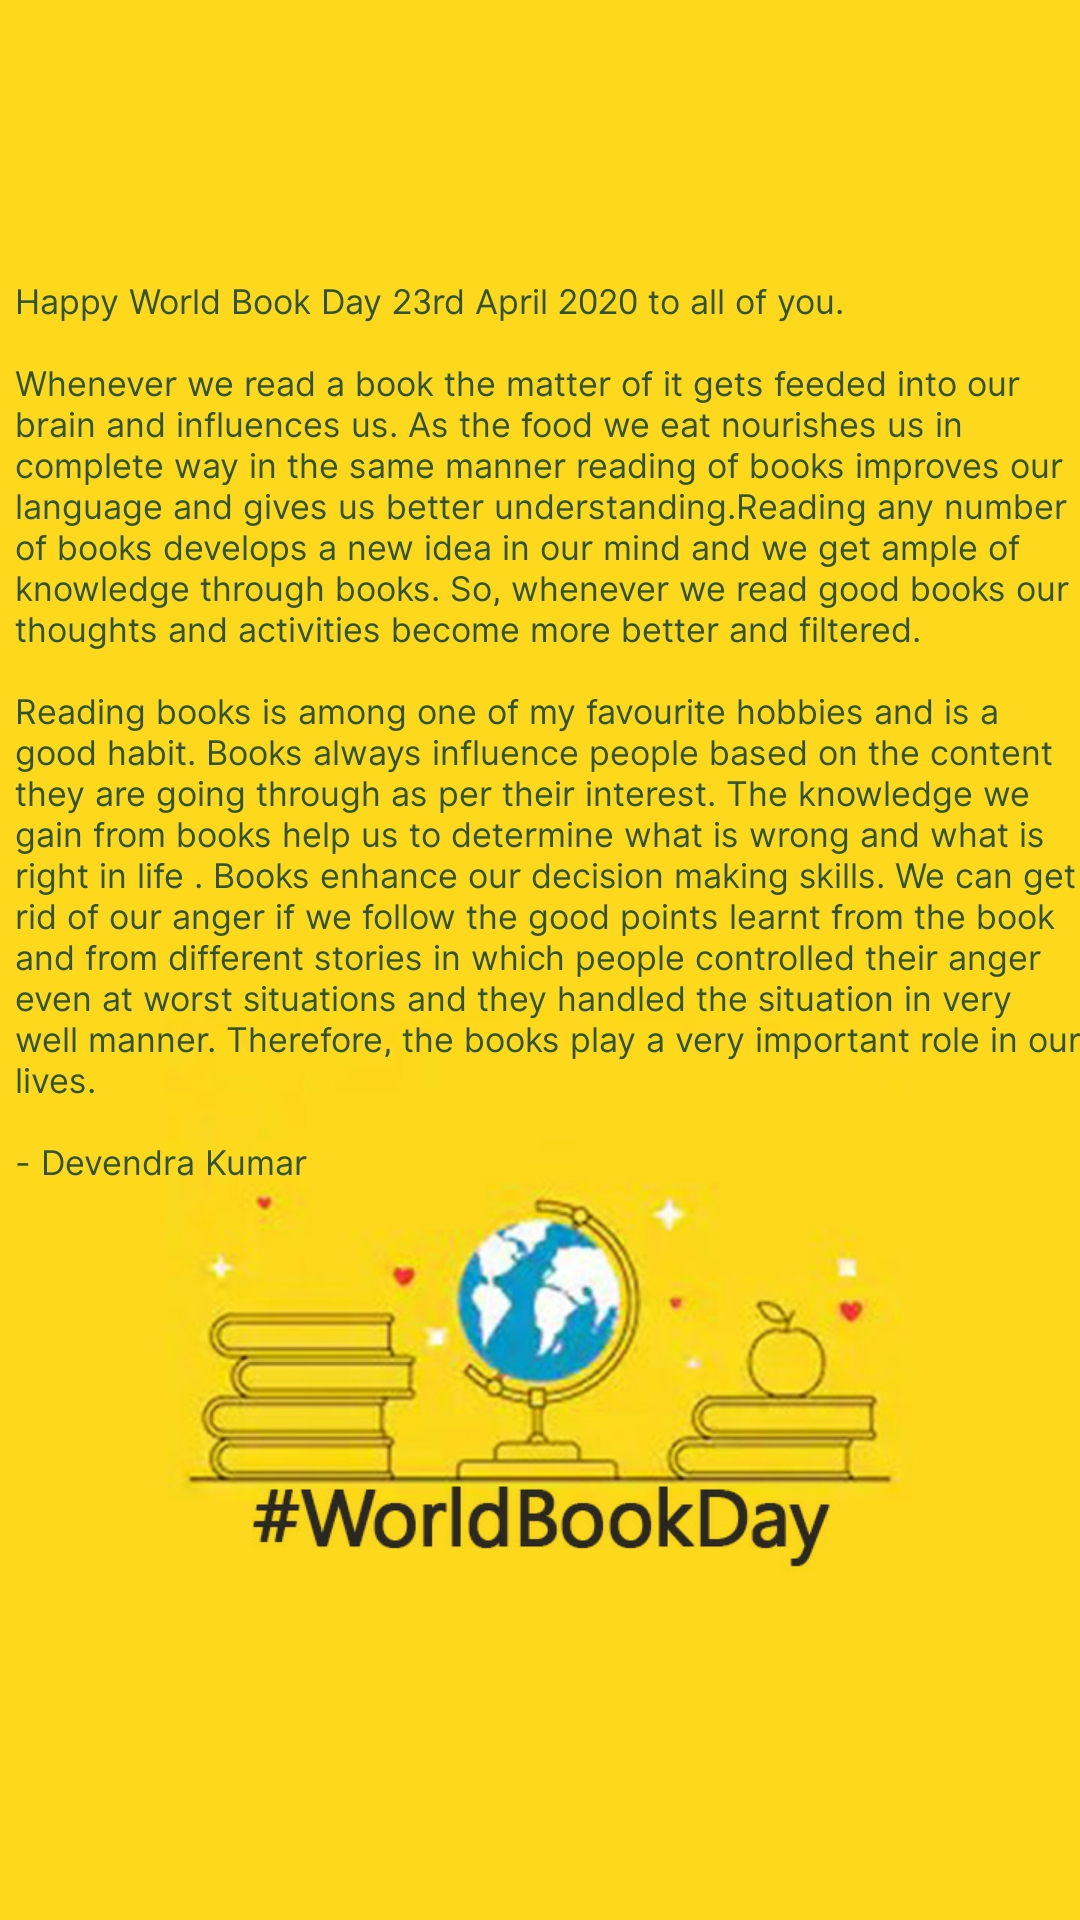 World Book Day Happy World Book Day 23rd April 2020 to all of you.  Whenever we read a book the matter of it gets feeded into our brain and influences us. As the food we eat nourishes us in complete way in the same manner reading of books improves our language and gives us better understanding.Reading any number of books develops a new idea in our mind and we get ample of knowledge through books. So, whenever we read good books our thoughts and activities become more better and filtered.  Reading books is among one of my favourite hobbies and is a good habit. Books always influence people based on the content they are going through as per their interest. The knowledge we gain from books help us to determine what is wrong and what is right in life . Books enhance our decision making skills. We can get rid of our anger if we follow the good points learnt from the book and from different stories in which people controlled their anger even at worst situations and they handled the situation in very well manner. Therefore, the books play a very important role in our lives.   - Devendra Kumar